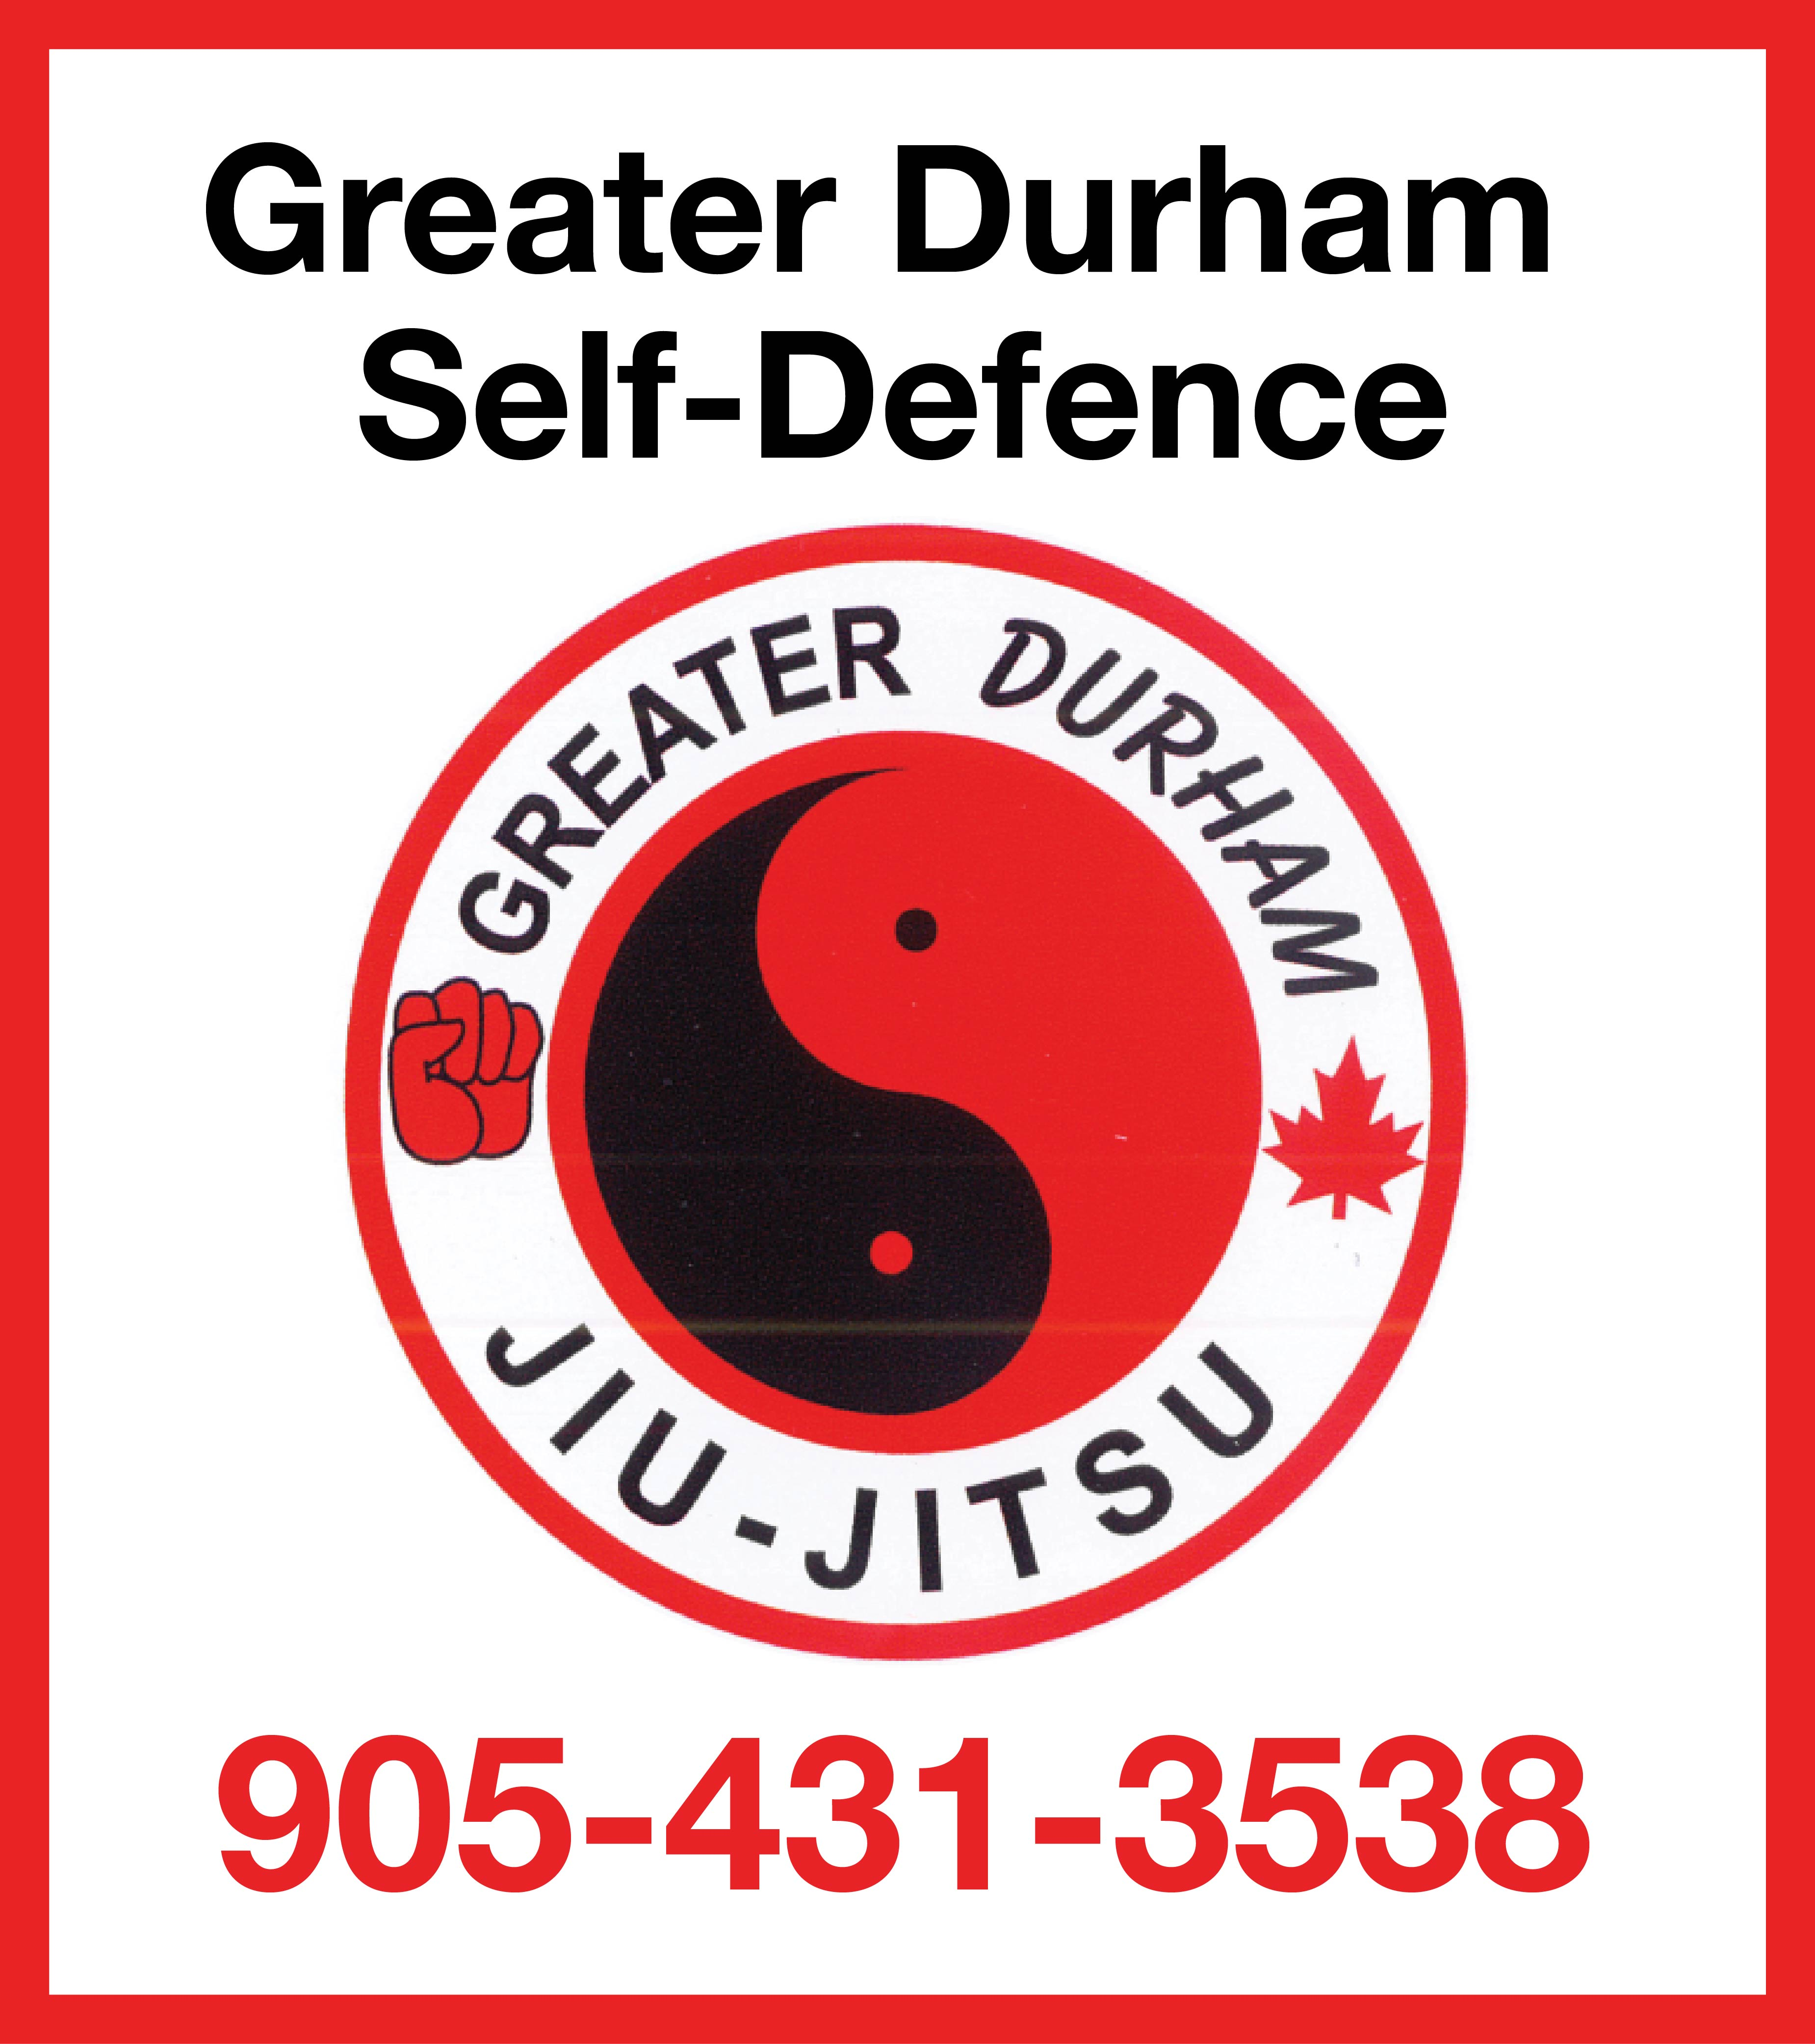 Greater Durham Self-Defence